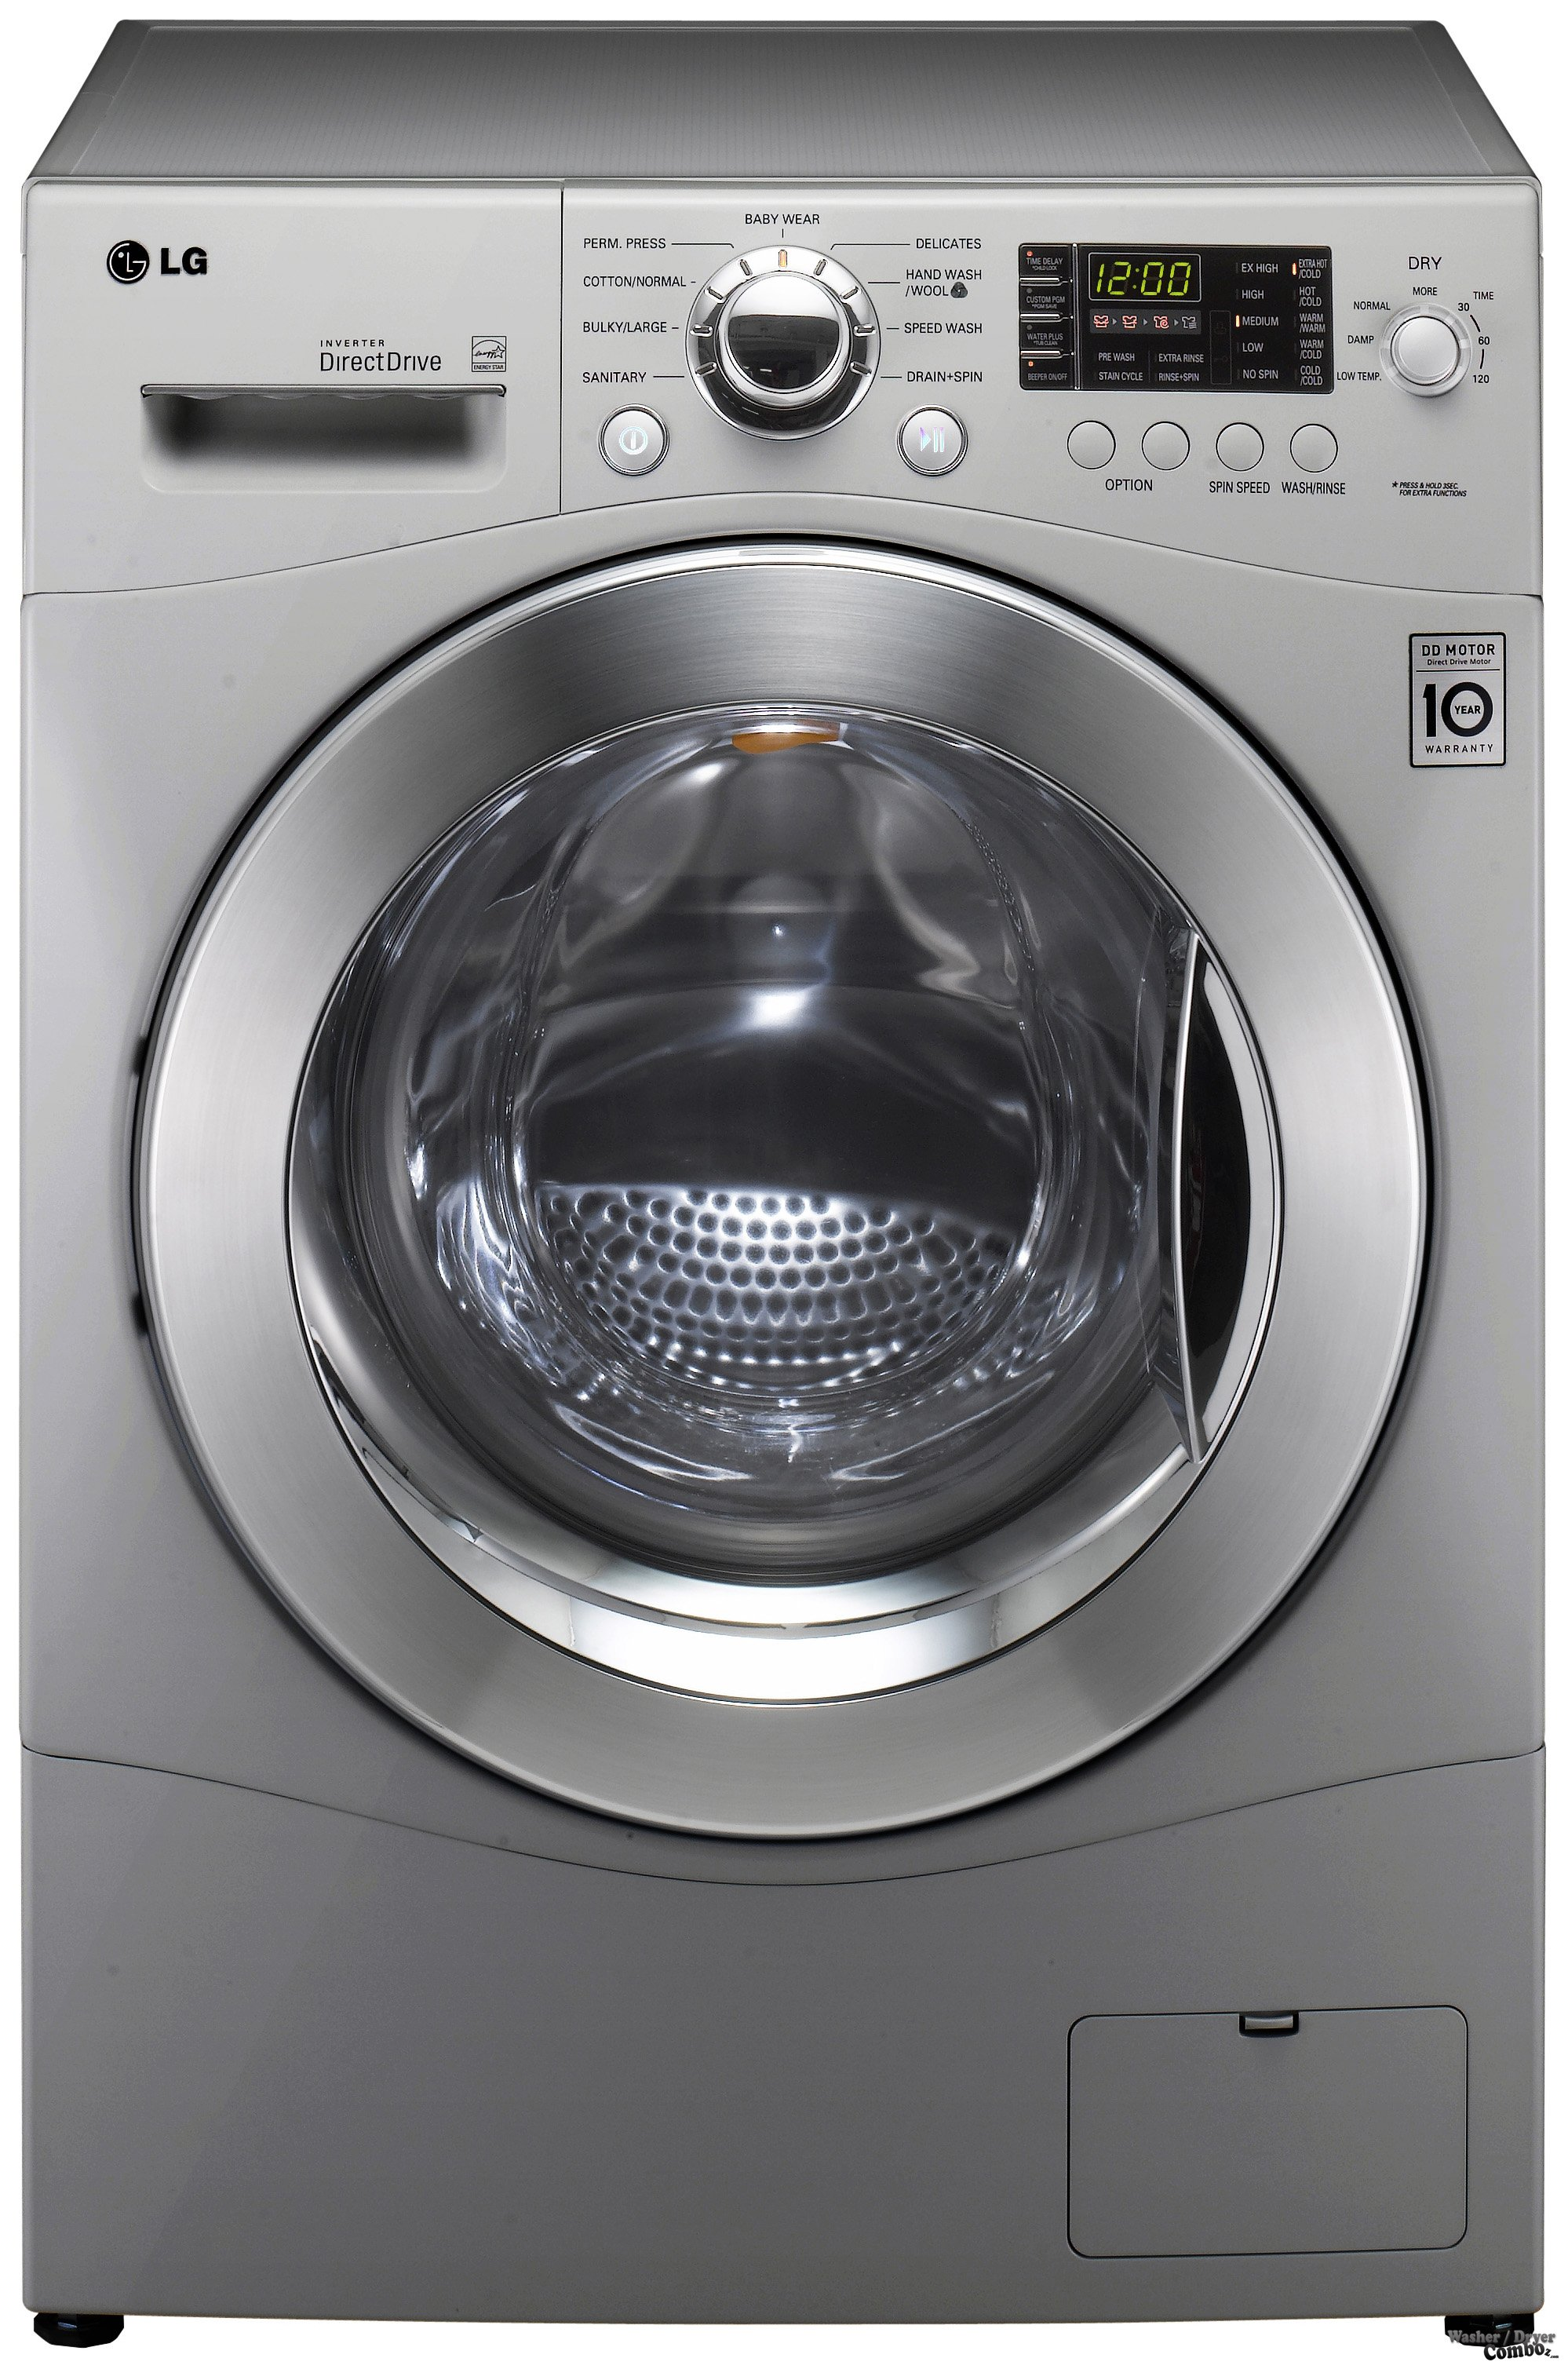 Lg 2 3 cu ft all in one washer and dryer - Lg Wm3455hs Front